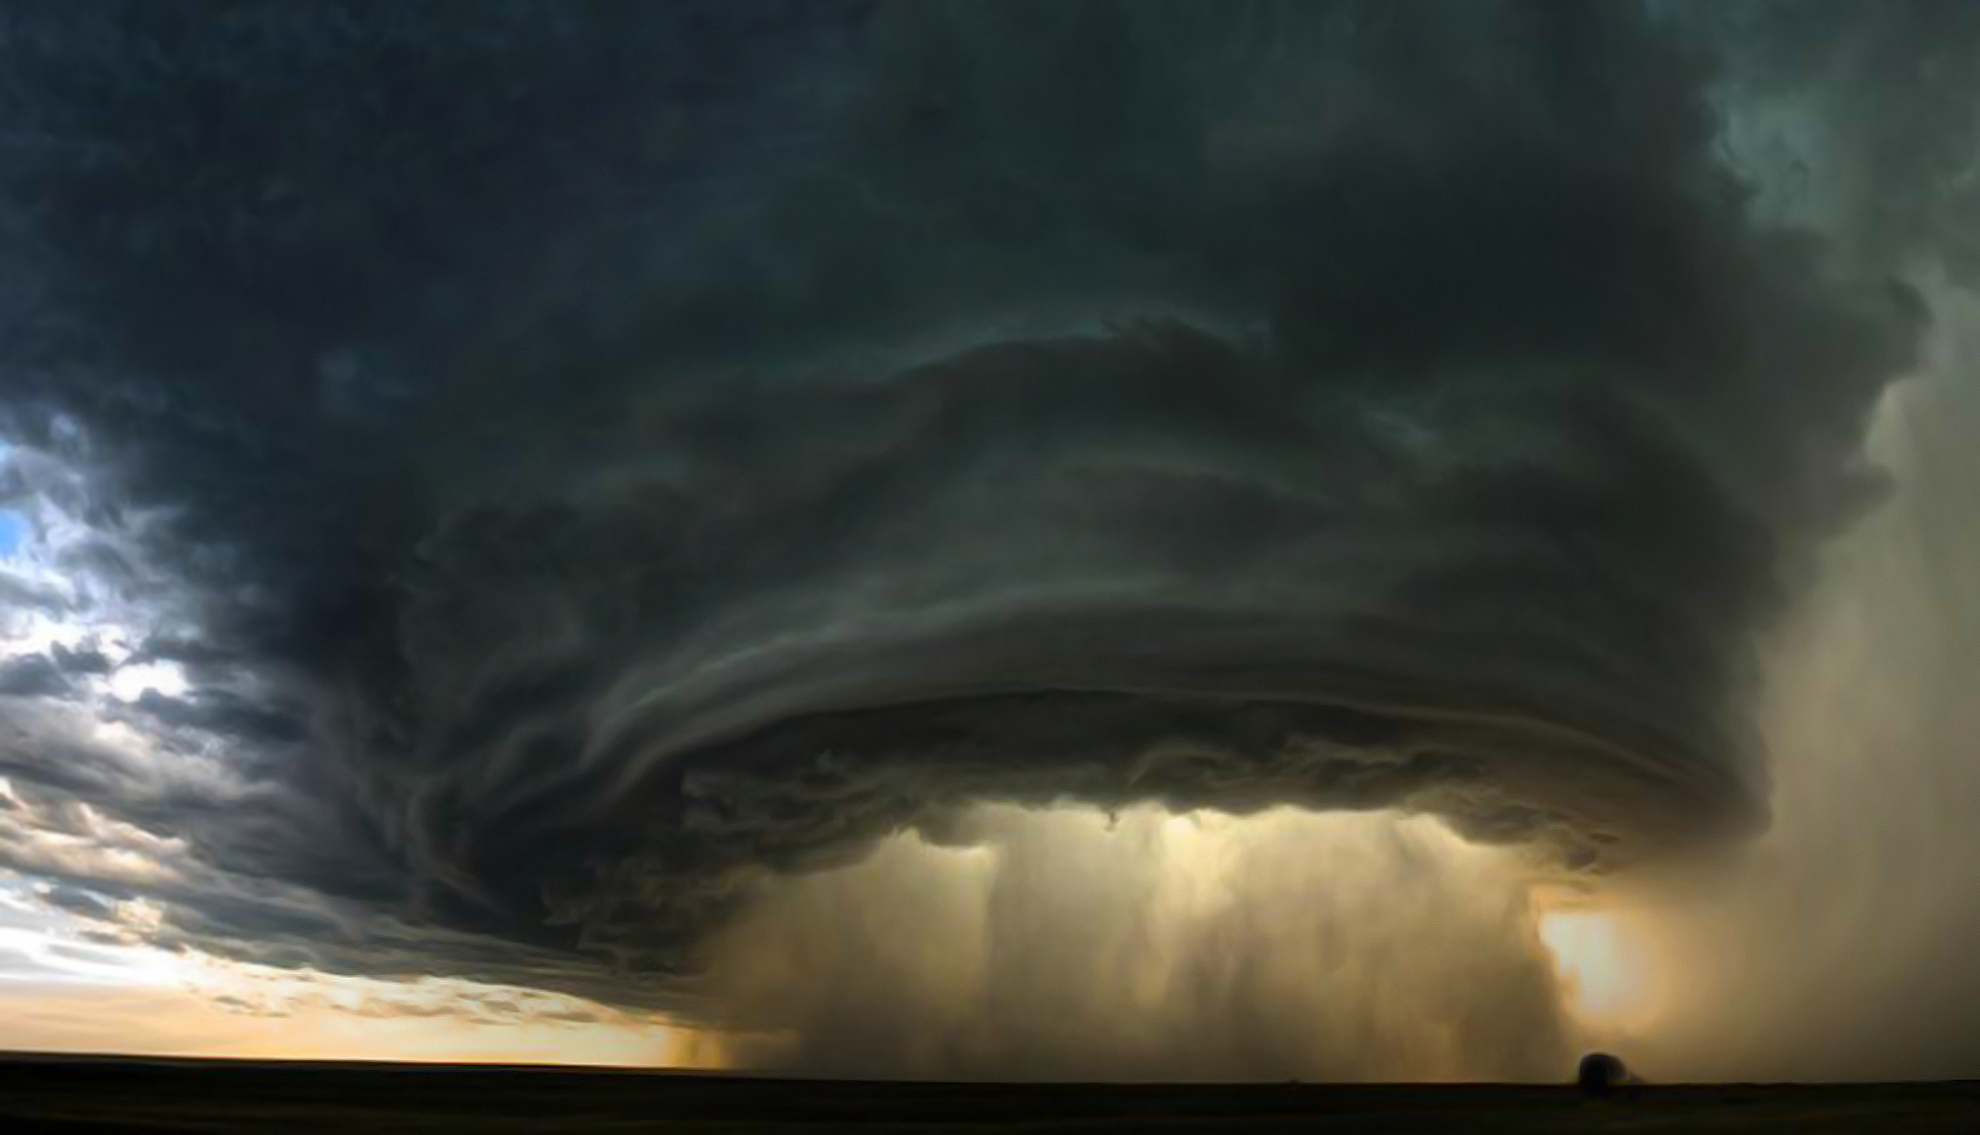 Supercell thunderstorm wallpapers 1980x1135